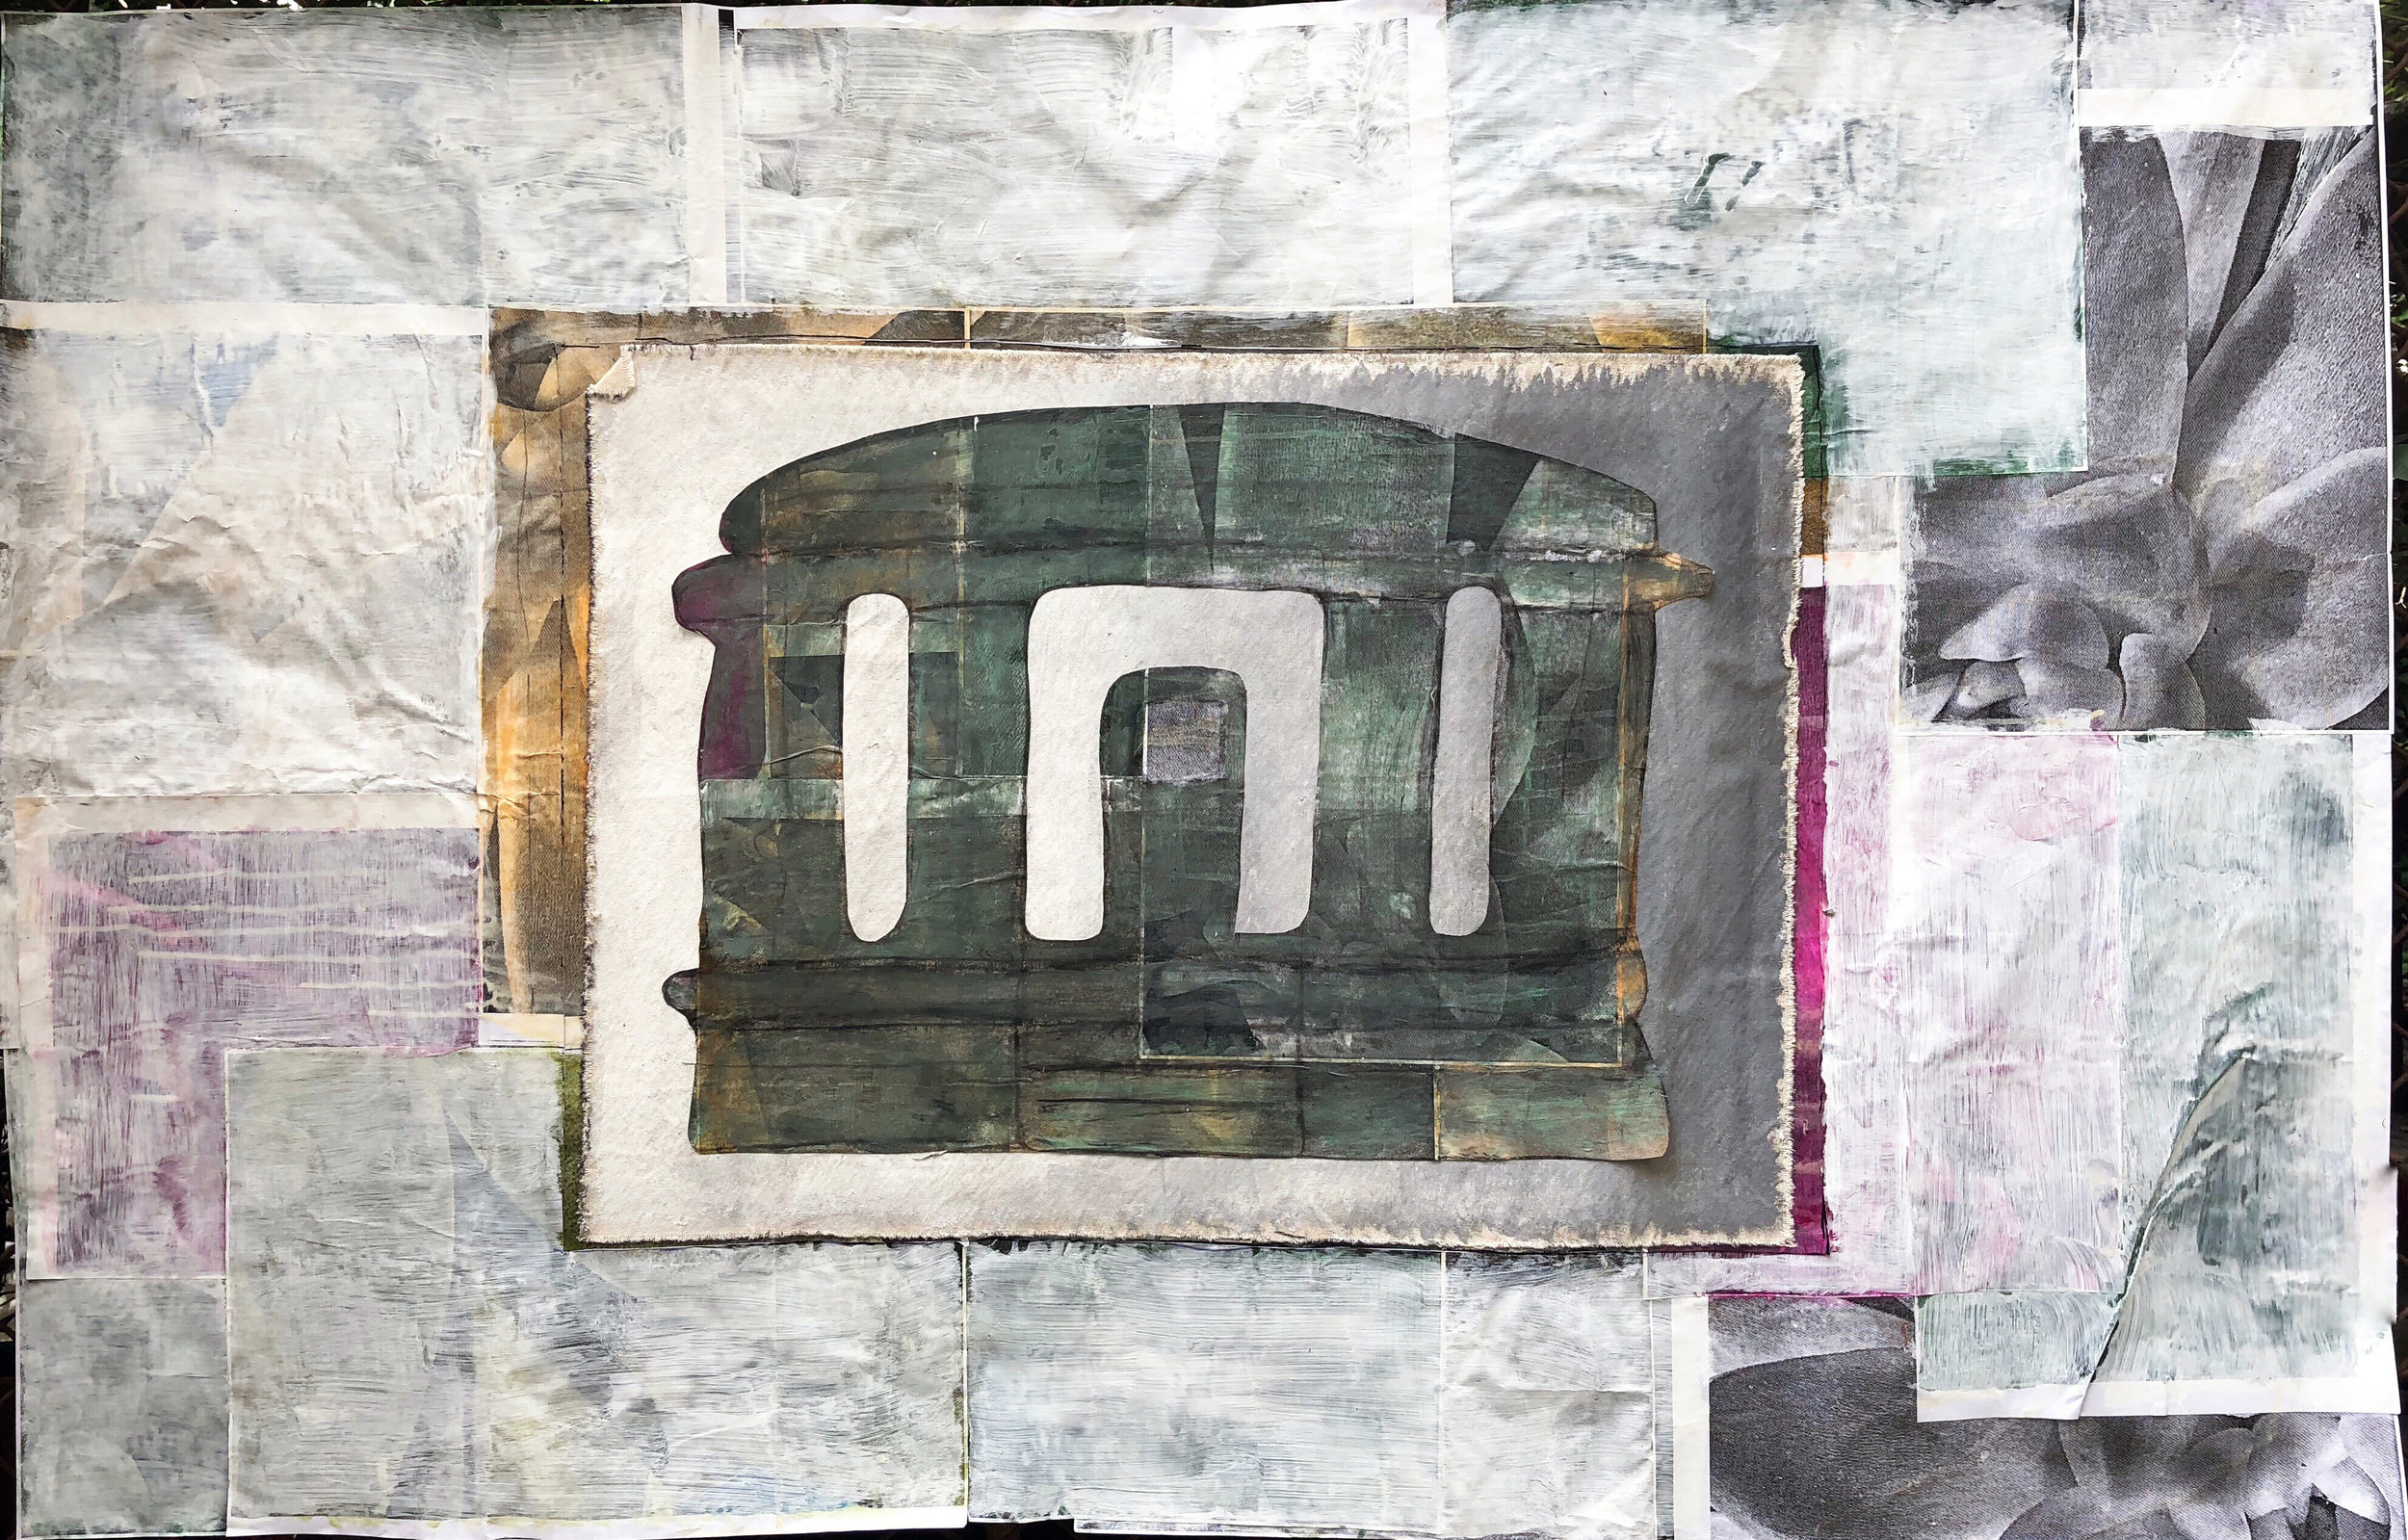 TonyMichaleEstrada - Welcome Home I - assemblage_ cut out pastel drawing on acrylics on canvas with photo print collage border with gesso - 35.25 x 53.5 - 2018 - $900.jpg